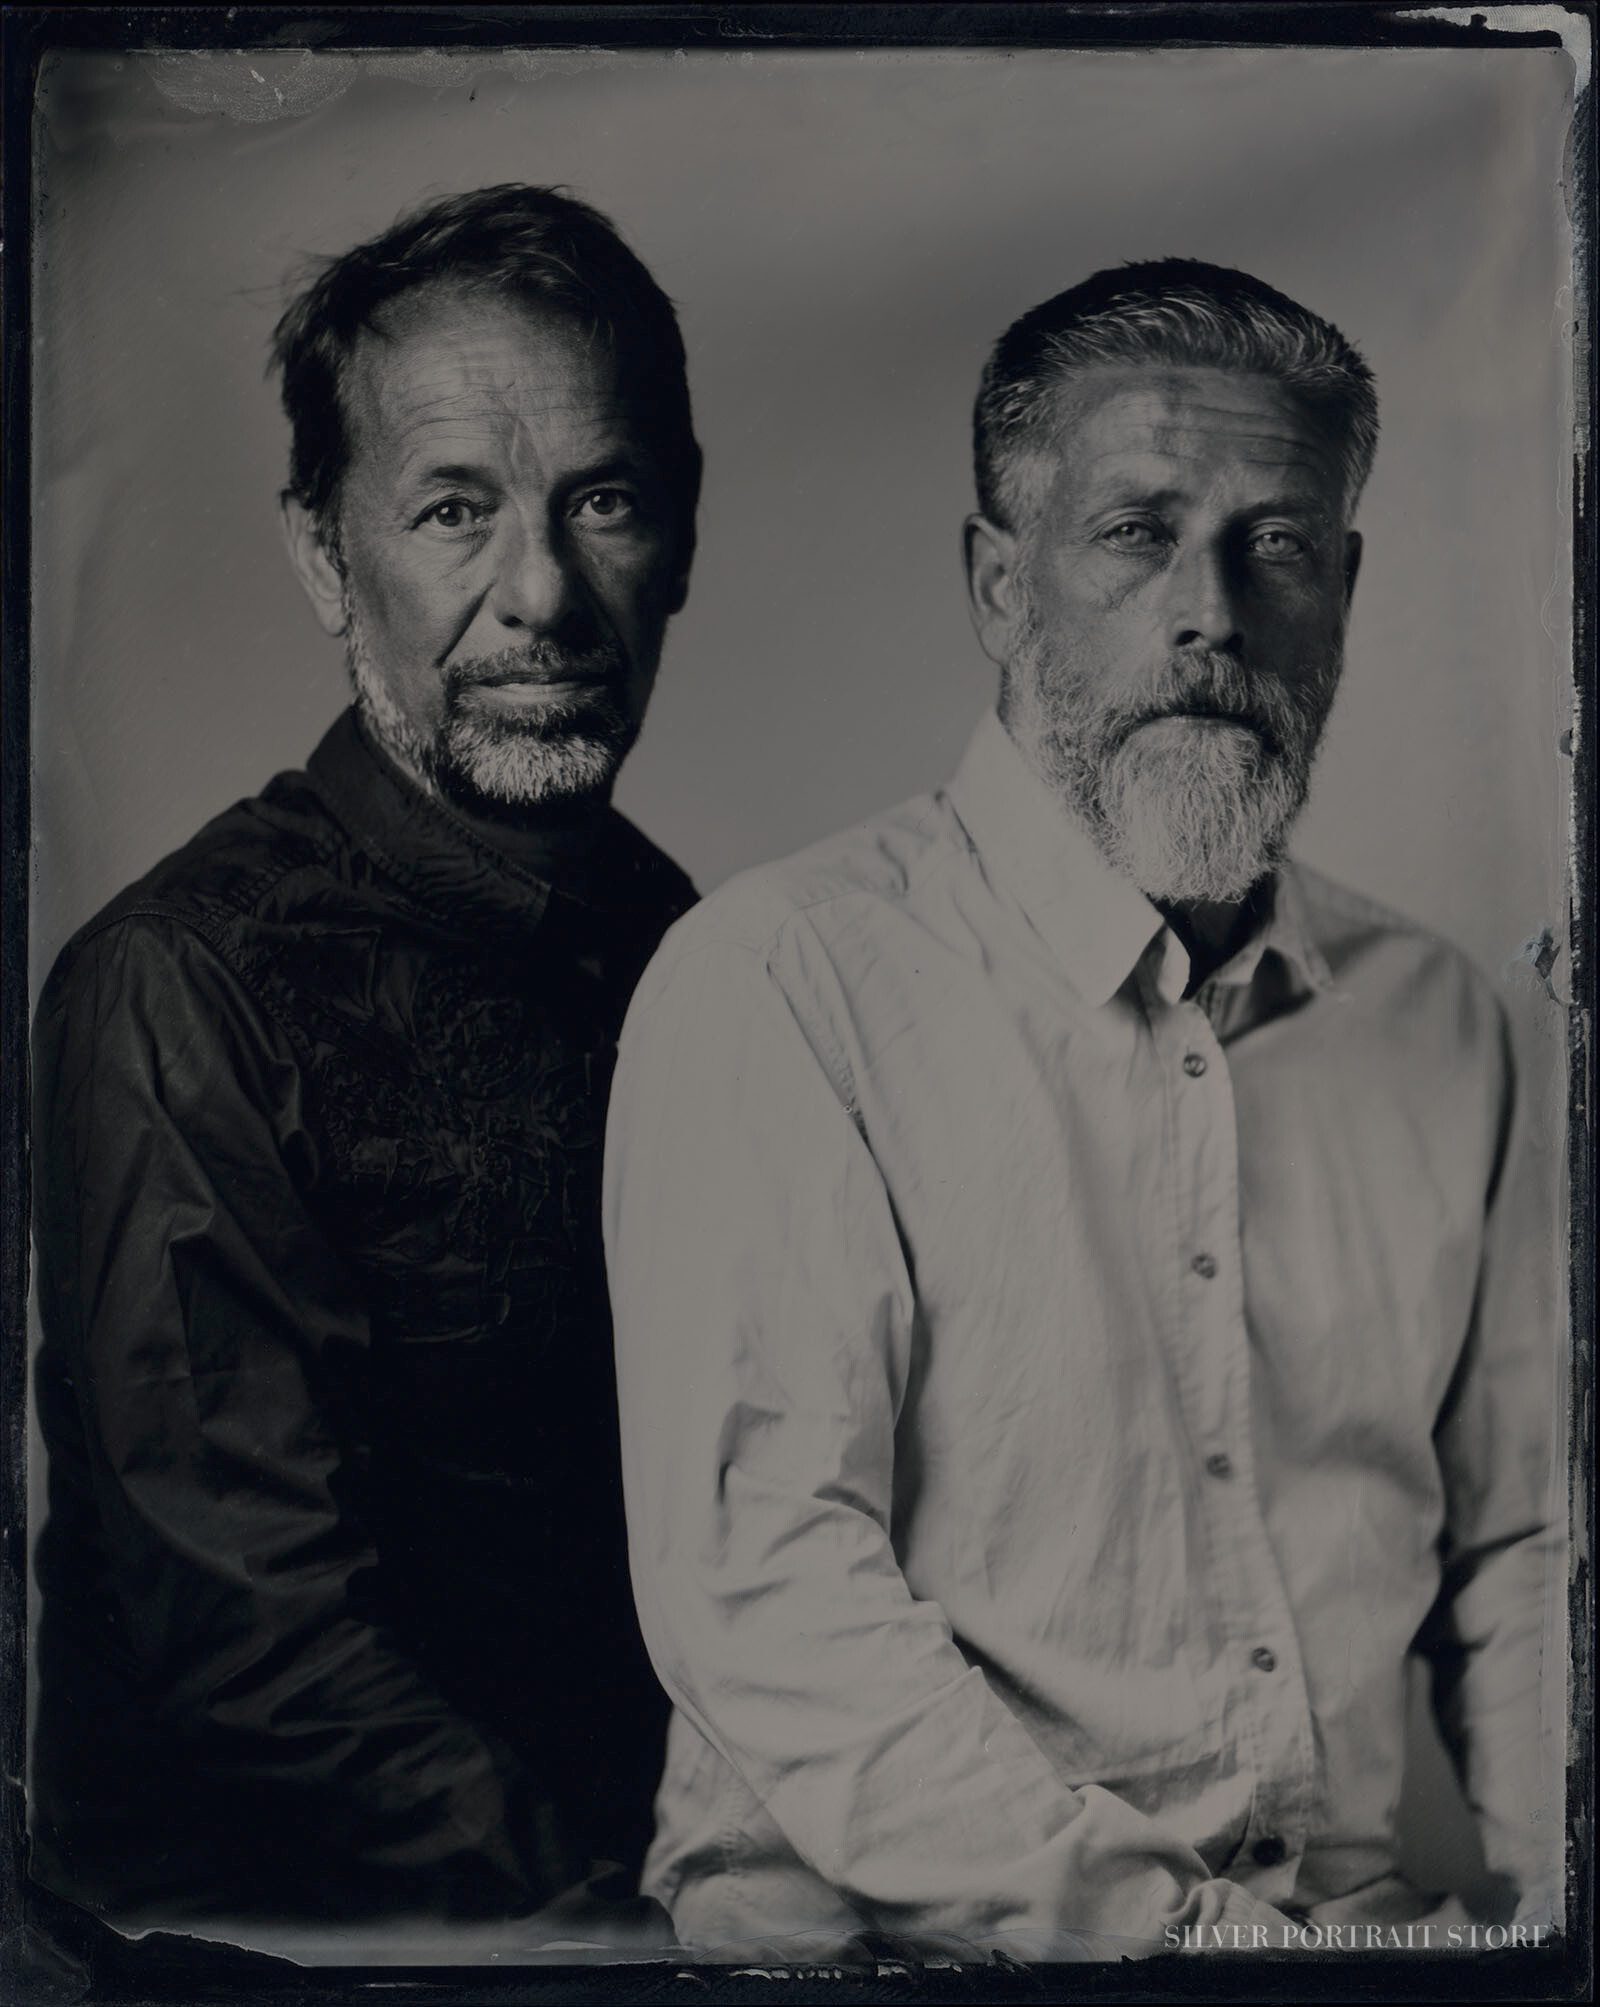 Jan Jelle & Cees-Silver Portrait Store-Scan from Wet plate collodion-Tintype 10 x 12 cm.